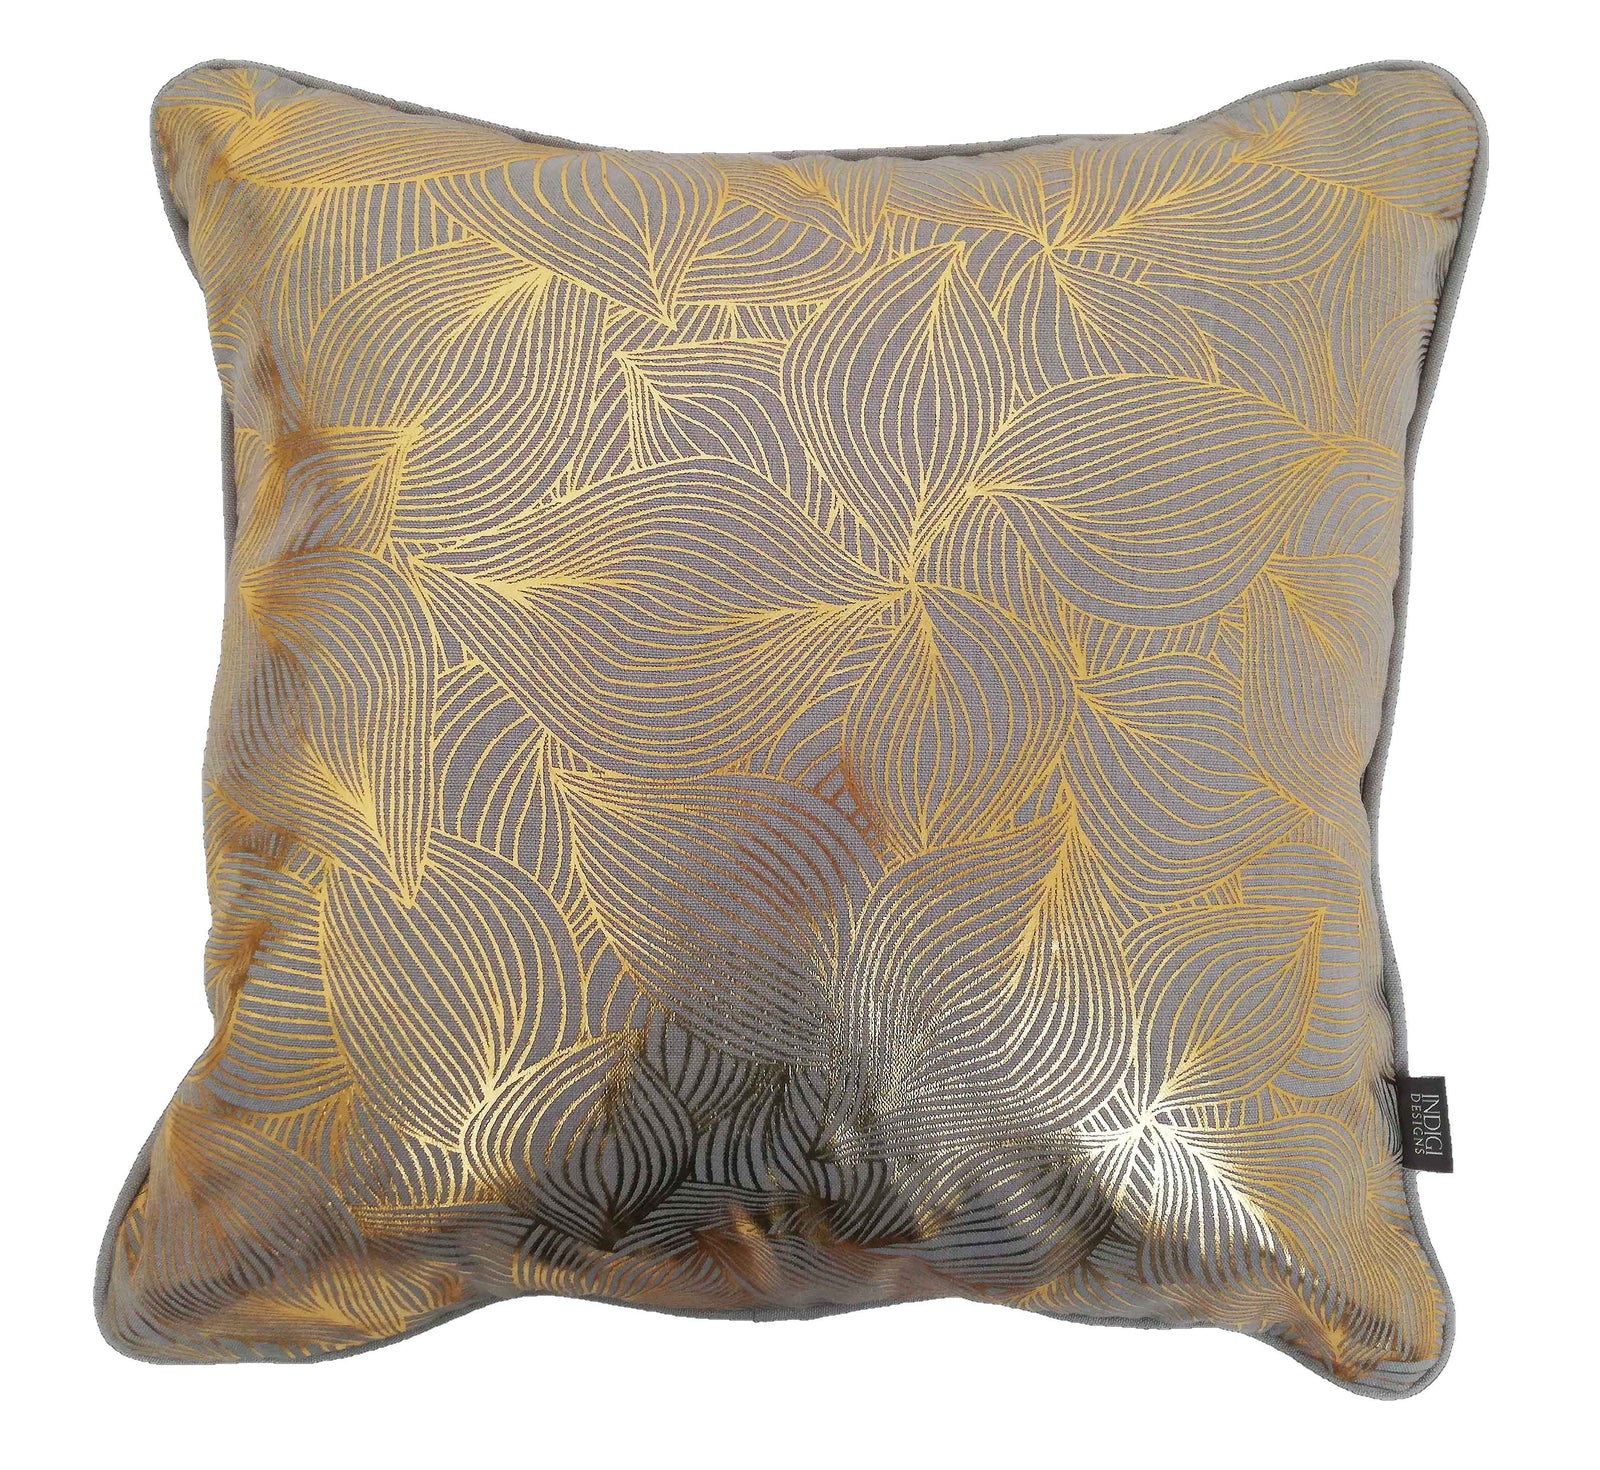 Lilium Gold on Grey Foiled Cushion Cover